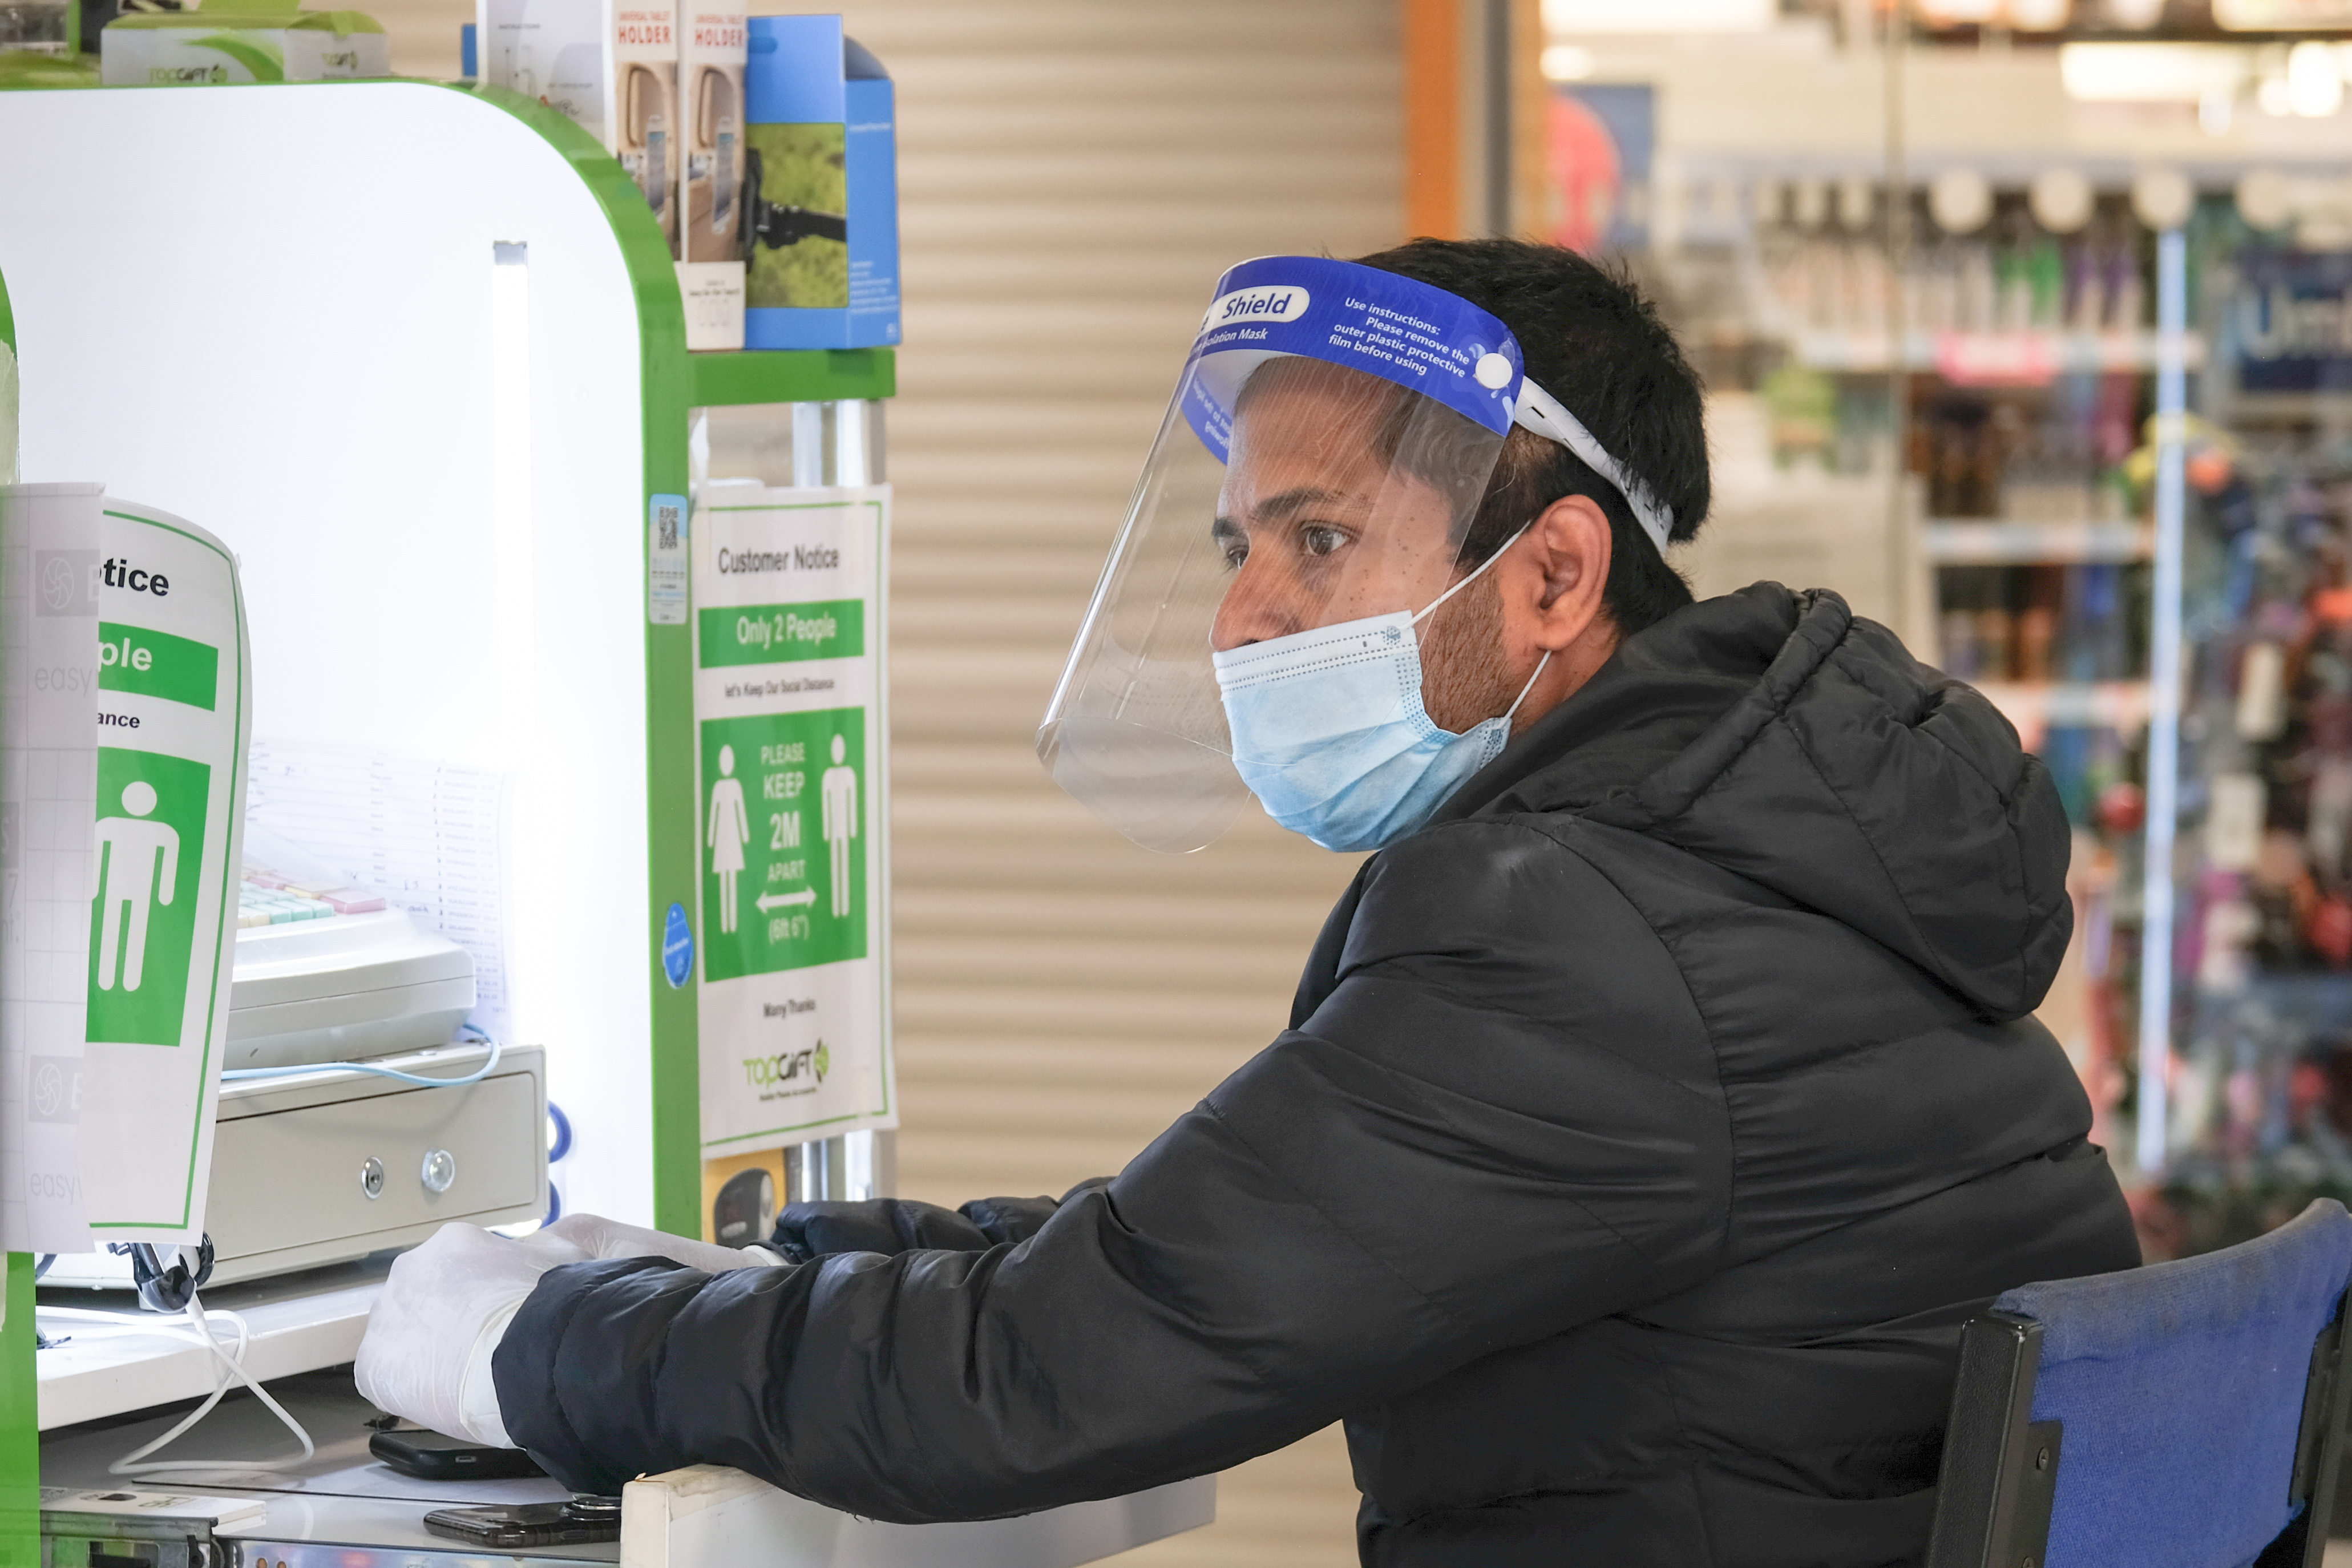 An employee at Top Gift Mobile stall wears a face shield and mask as preventive measure while working. (Photo by Dawn Fletcher-Park / SOPA Images/Sipa USA)